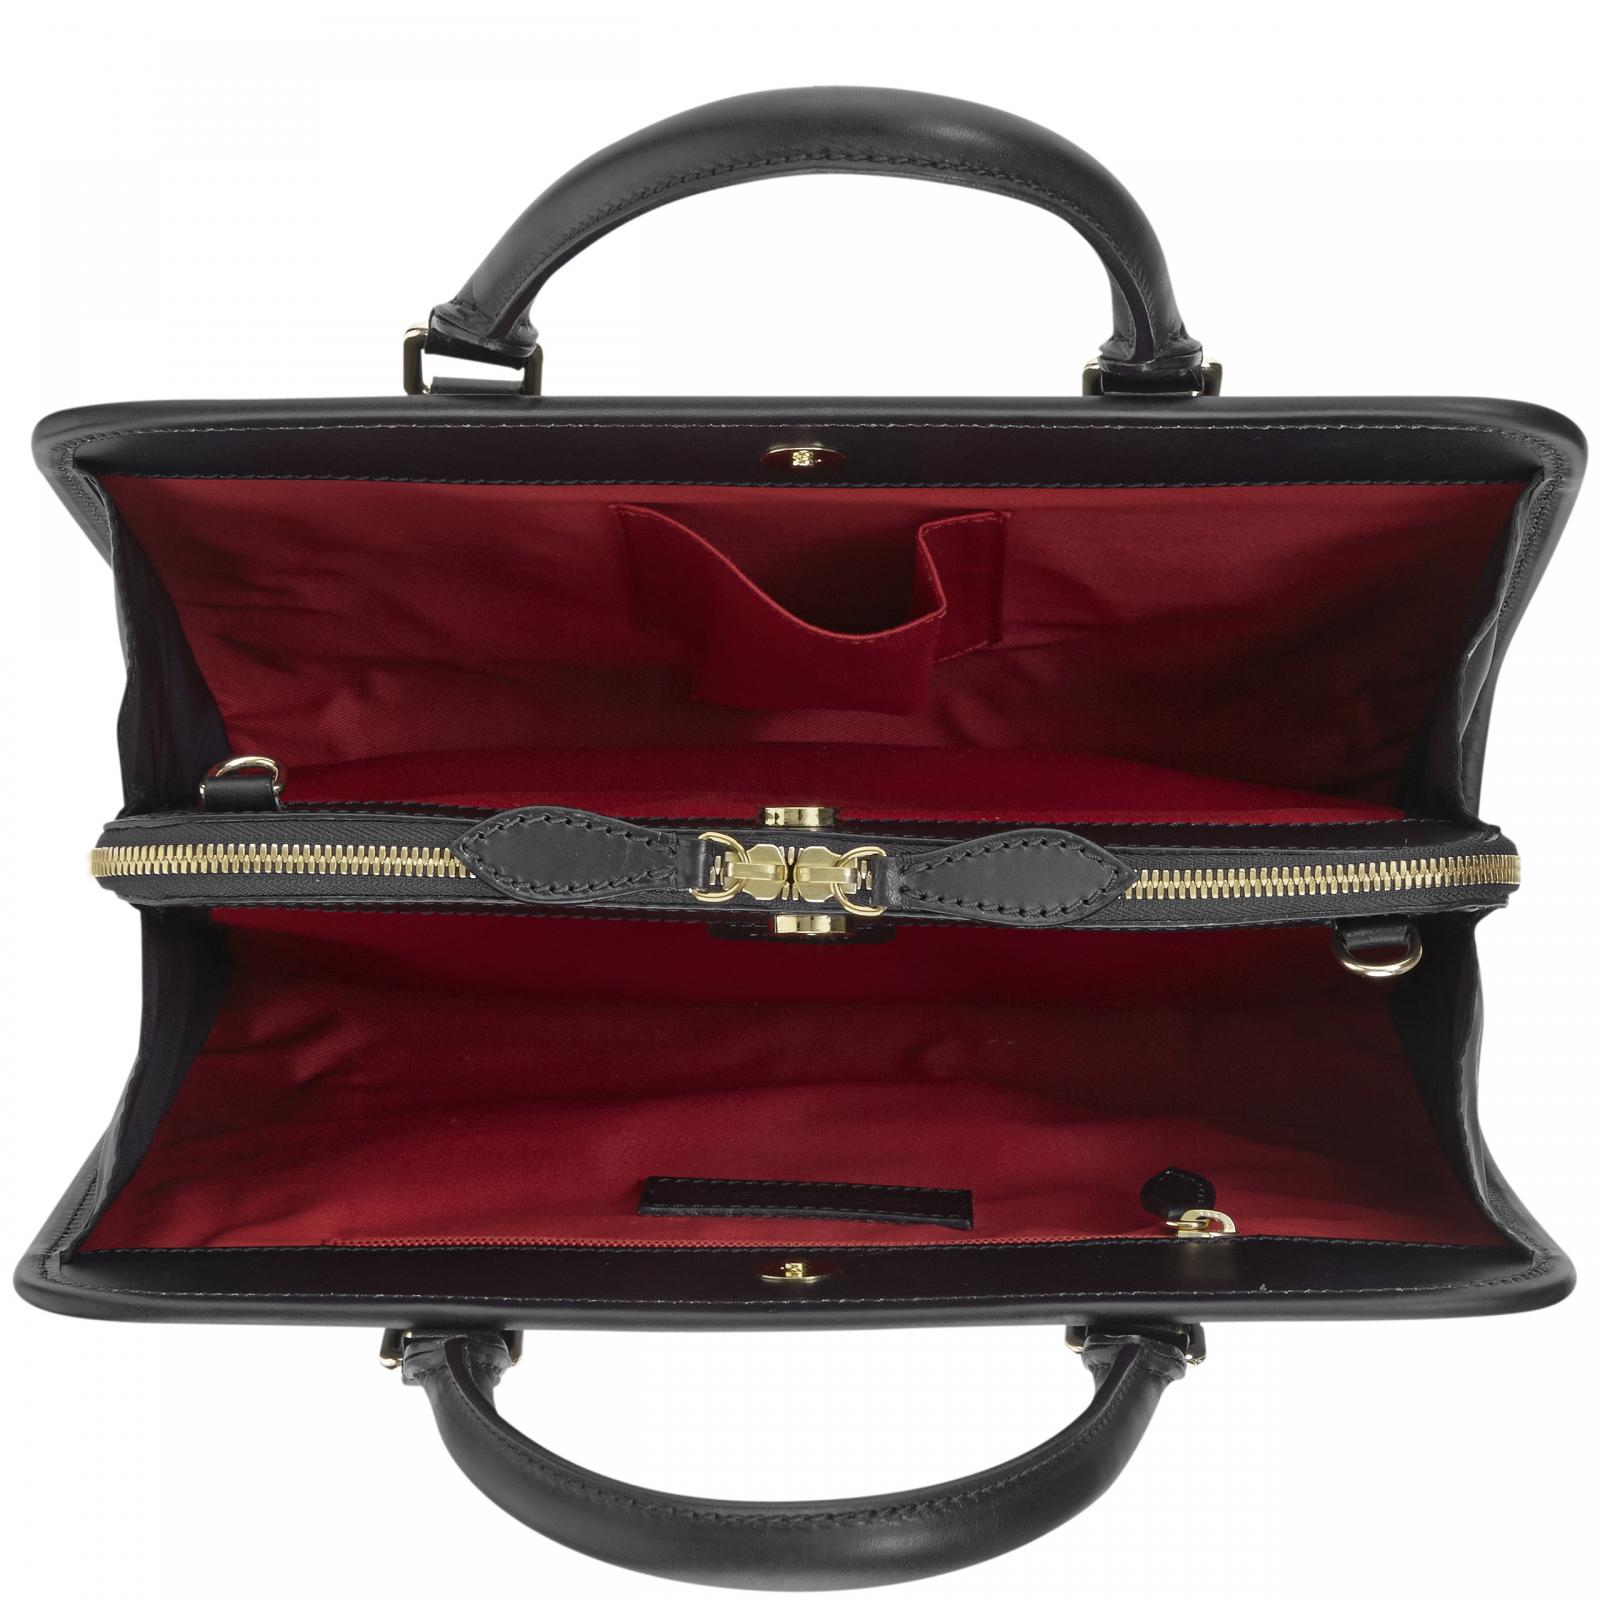 GearDiary The Travelteq Lauren Leather iPad Handbag Will Make You Swoon